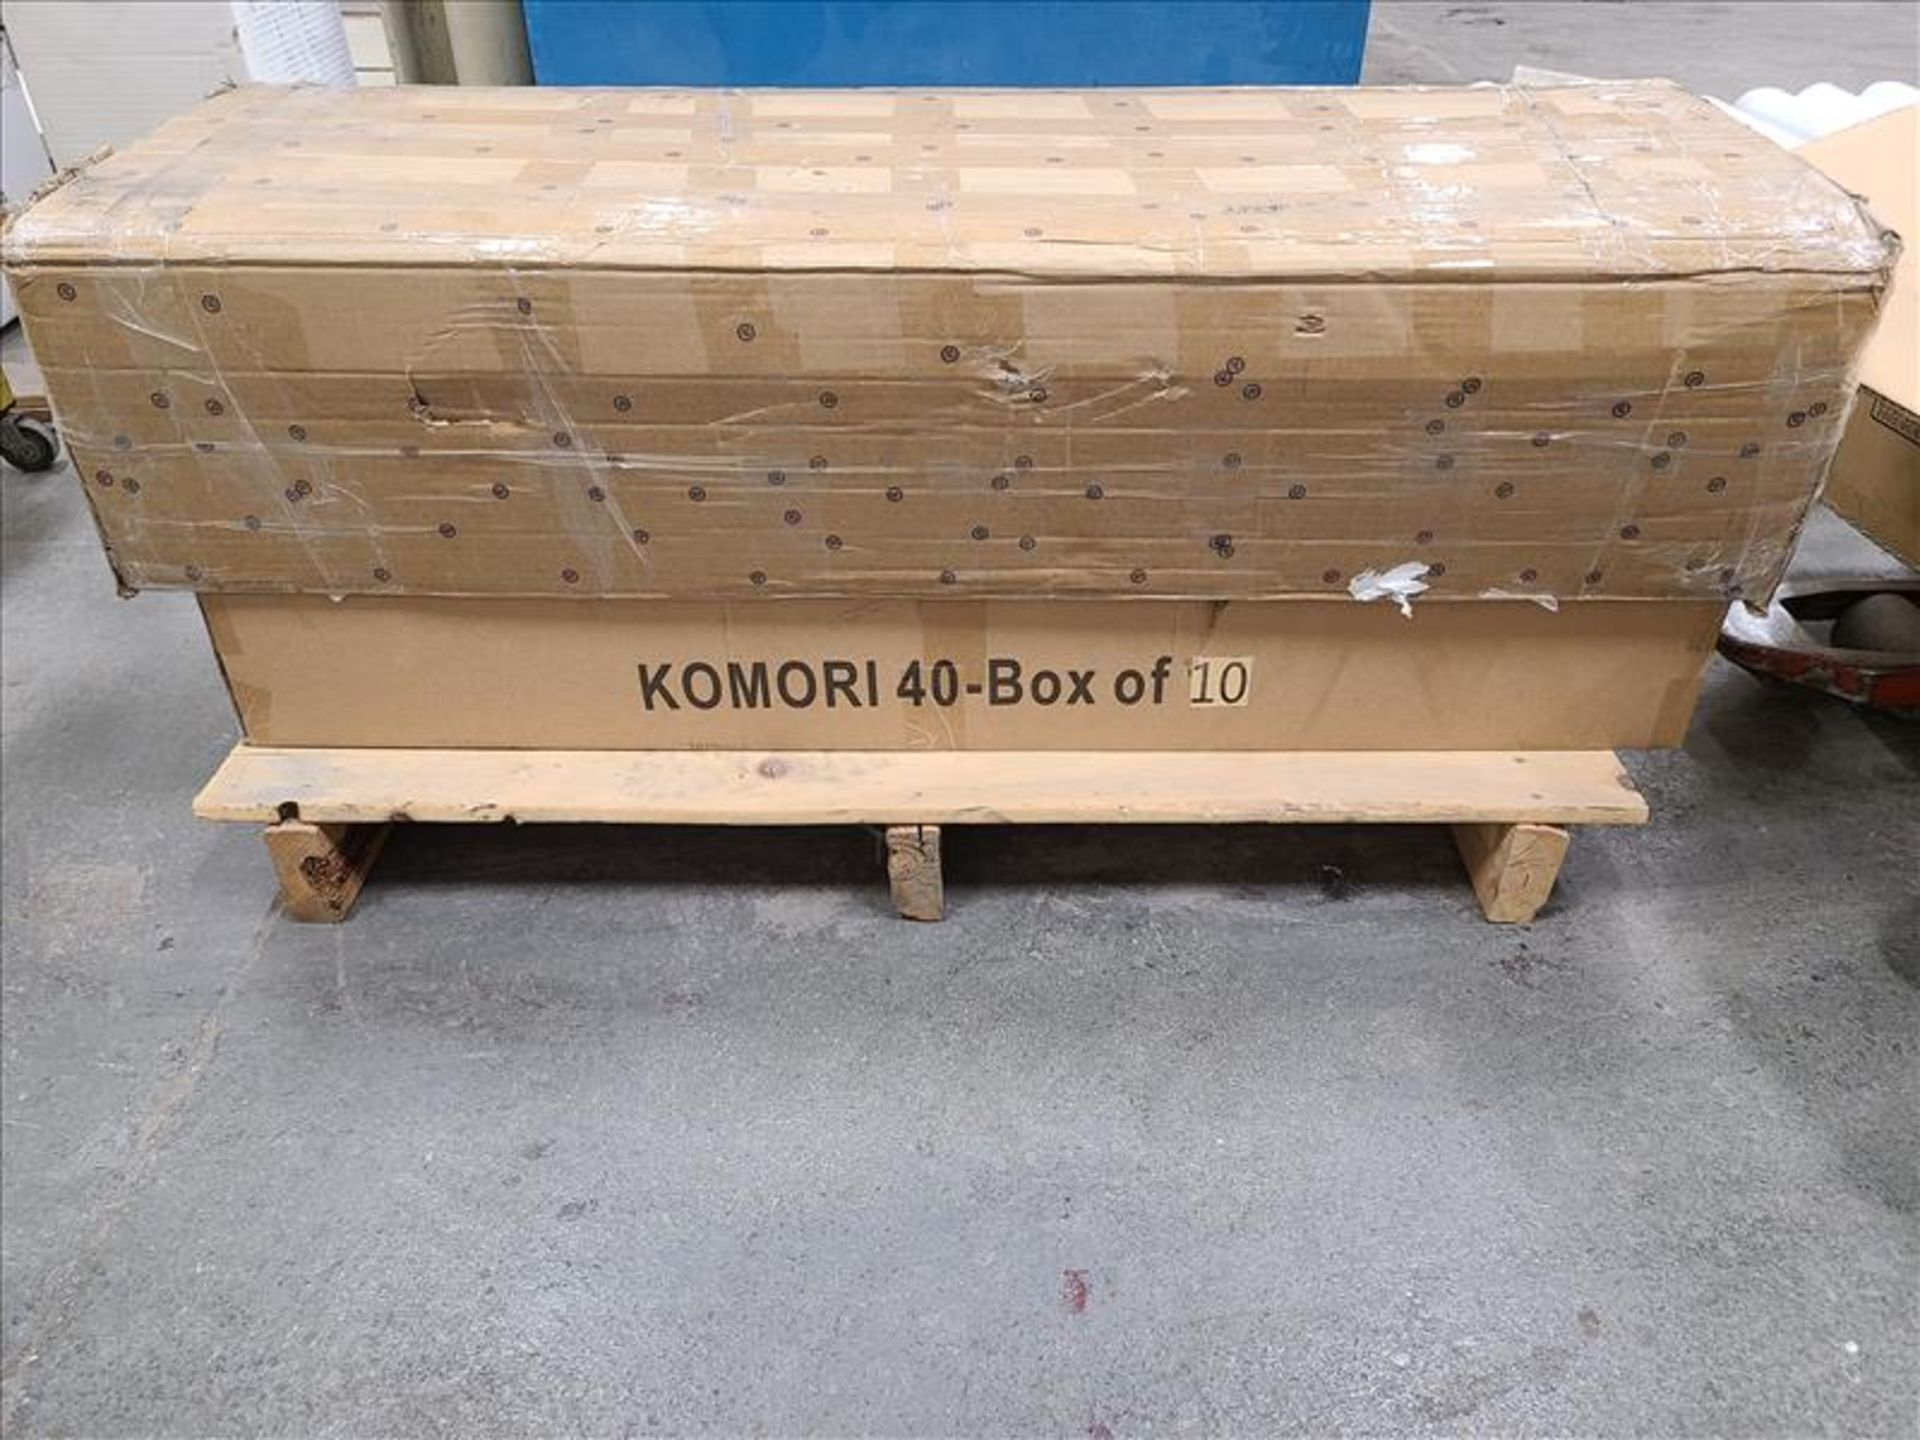 Komori 4-color offset printing press, Series Lithrone 40, model L-440, S/N.2202 approx. 68 - Image 21 of 22